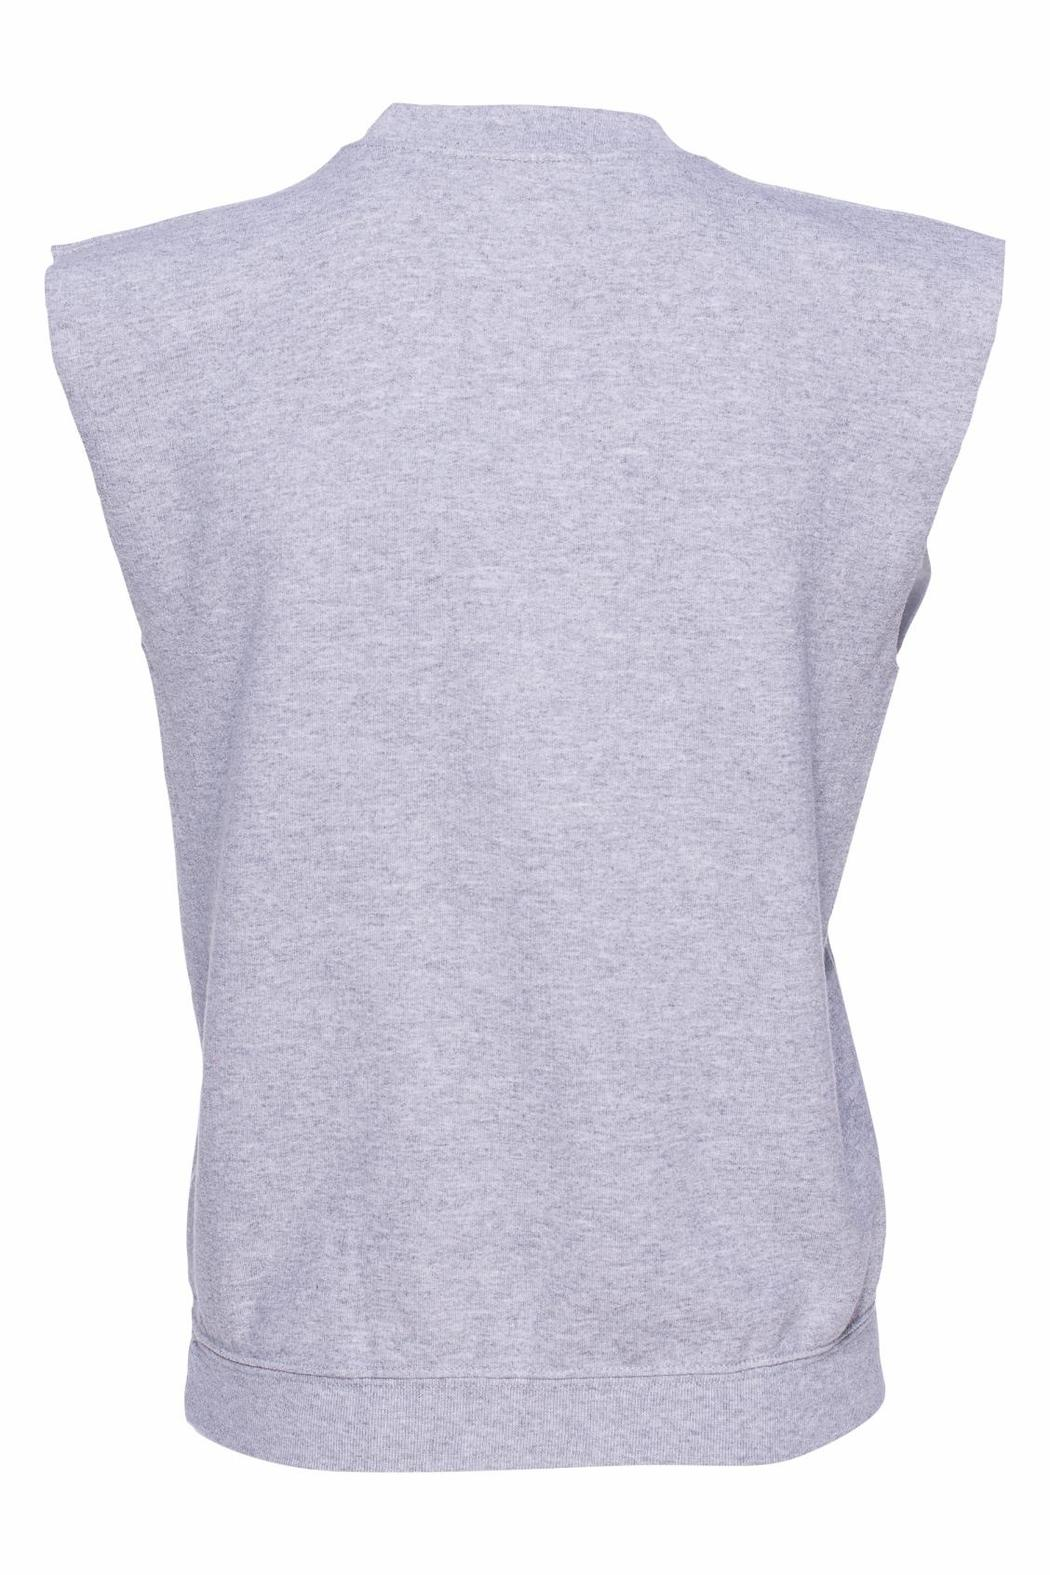 Harvey Faircloth Bodega Sleeveless Sweatshirt - Front Full Image